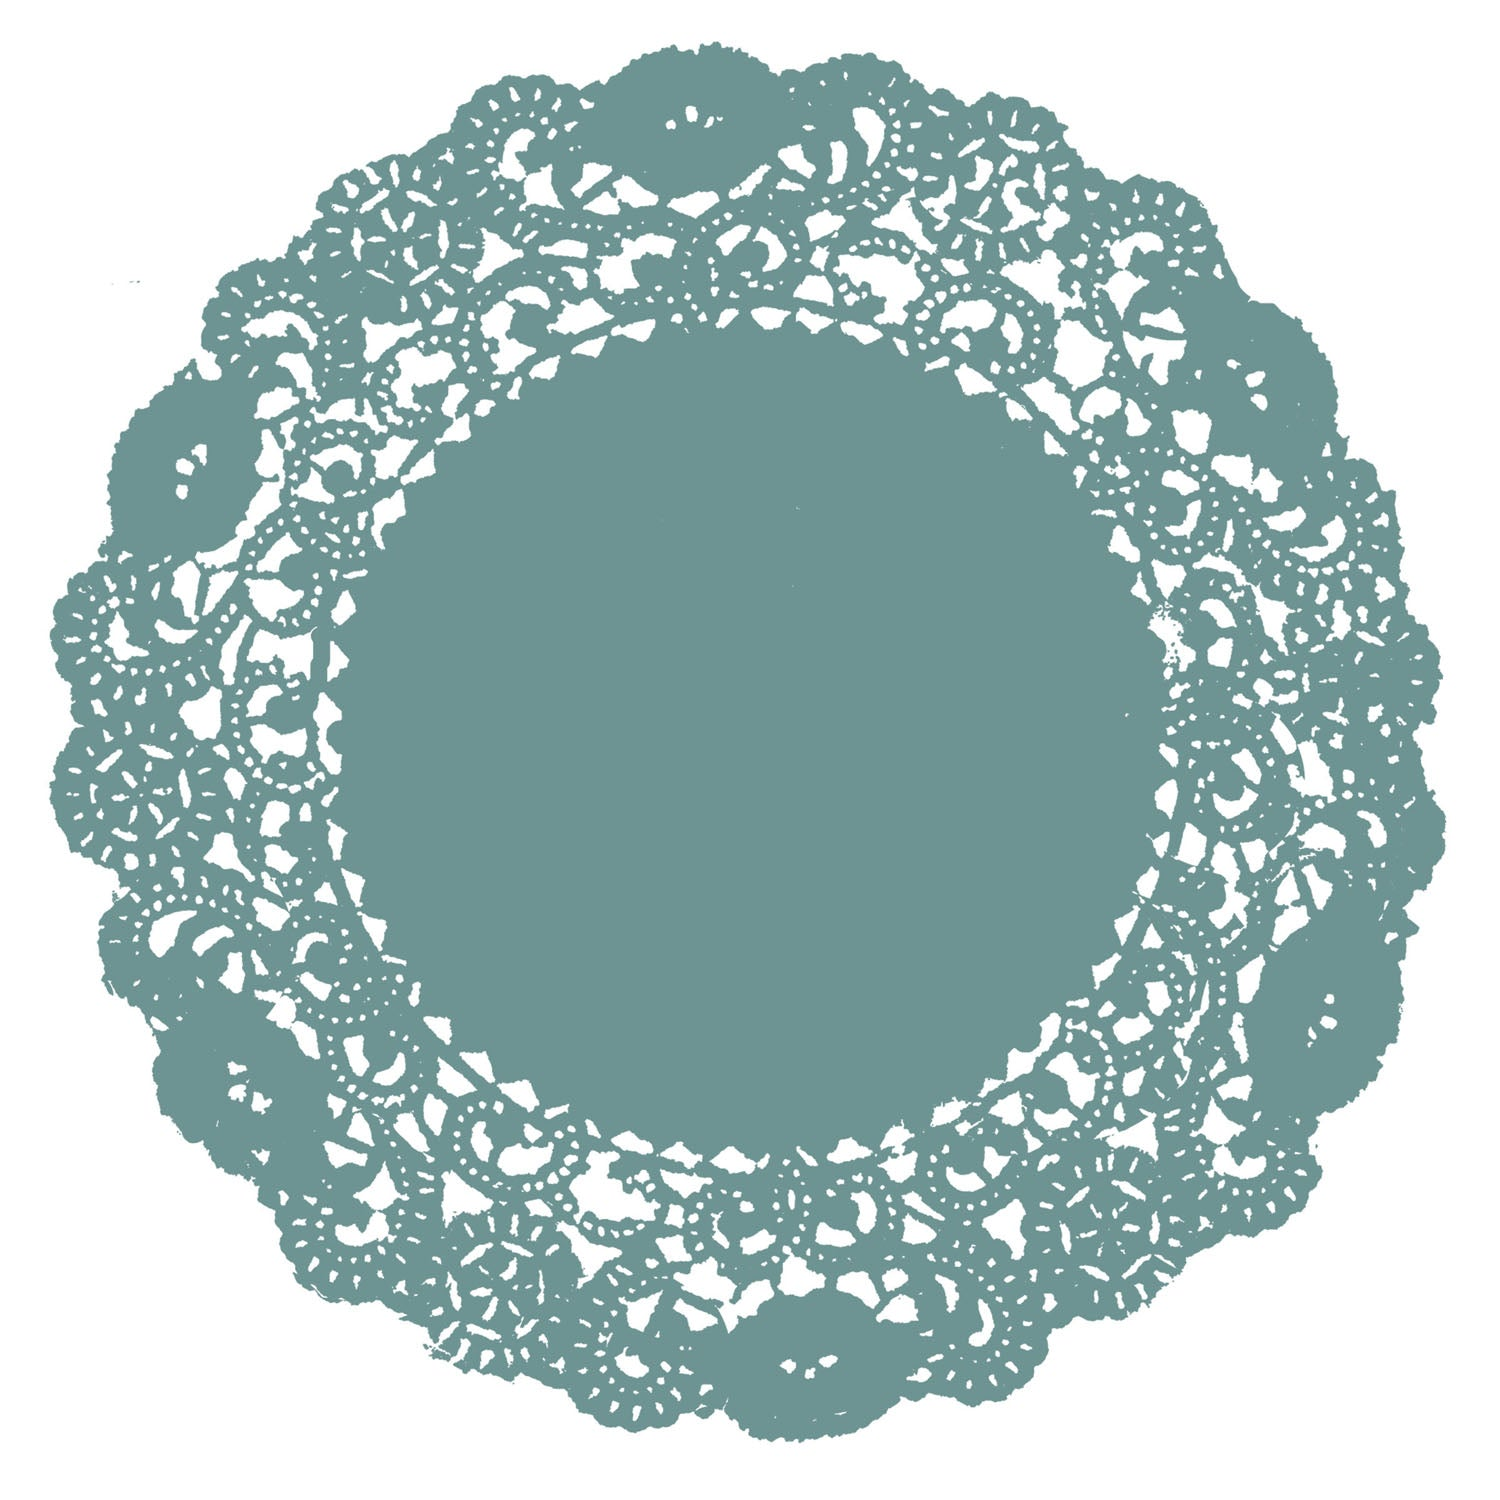 Dusty Teal Doily